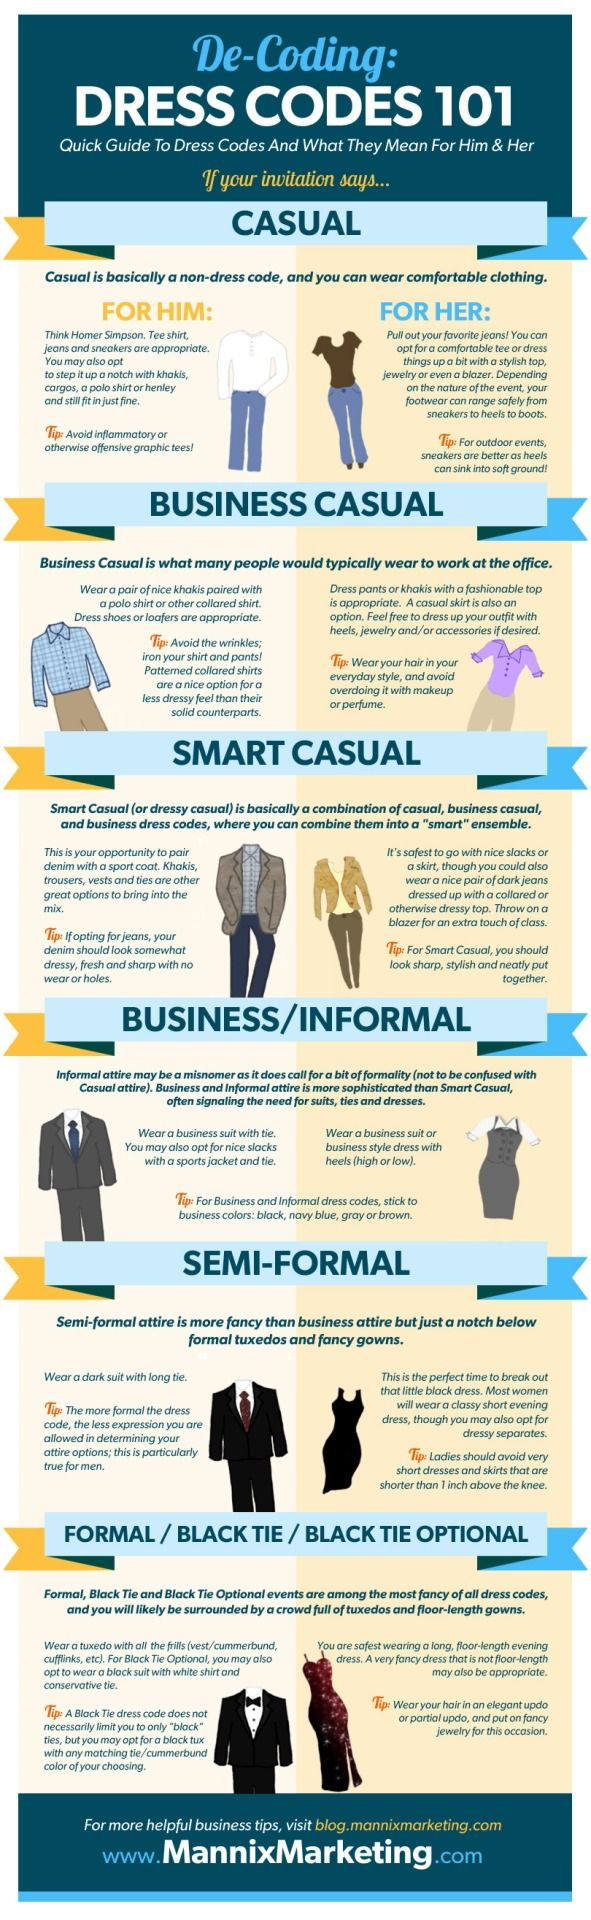 Dress Codes 101: From Casual to Black Tie put the style in with invitation